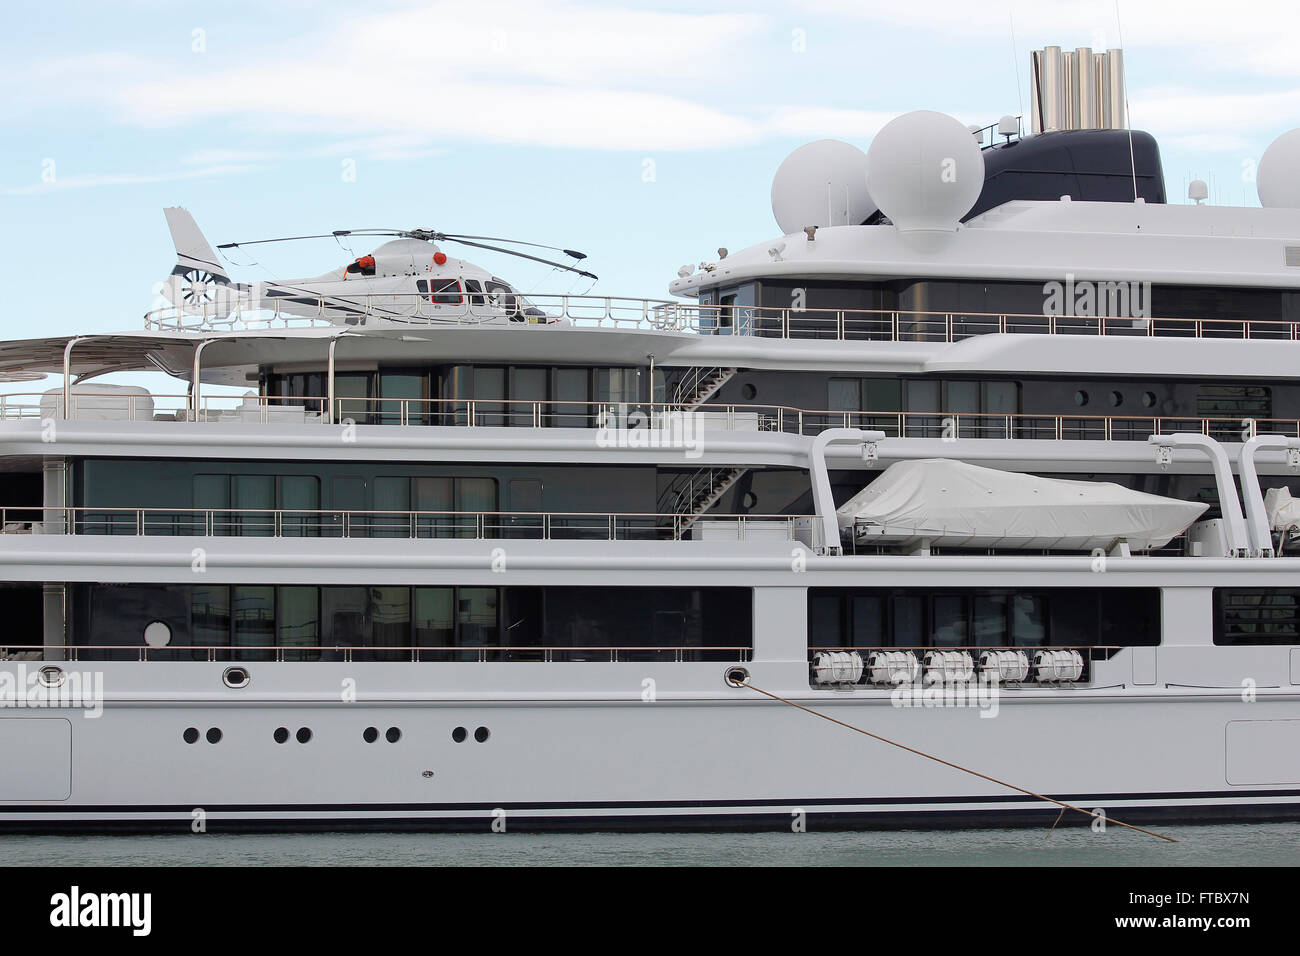 Luxury yacht with helicopter, moored on harbor - Stock Image